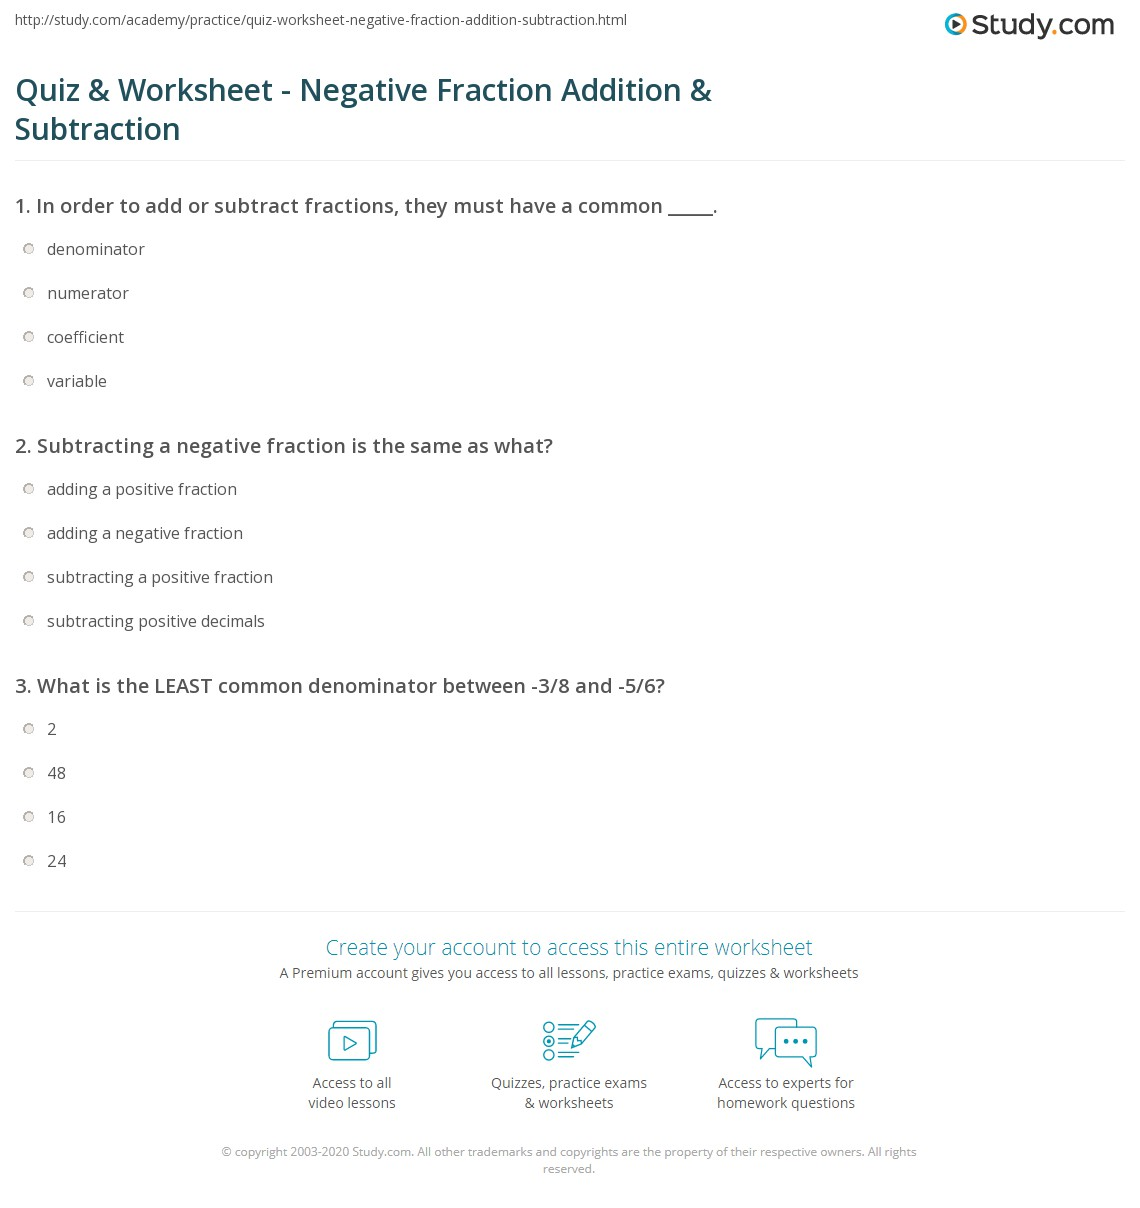 worksheet Addition Fractions Worksheets quiz worksheet negative fraction addition subtraction print adding subtracting fractions worksheet